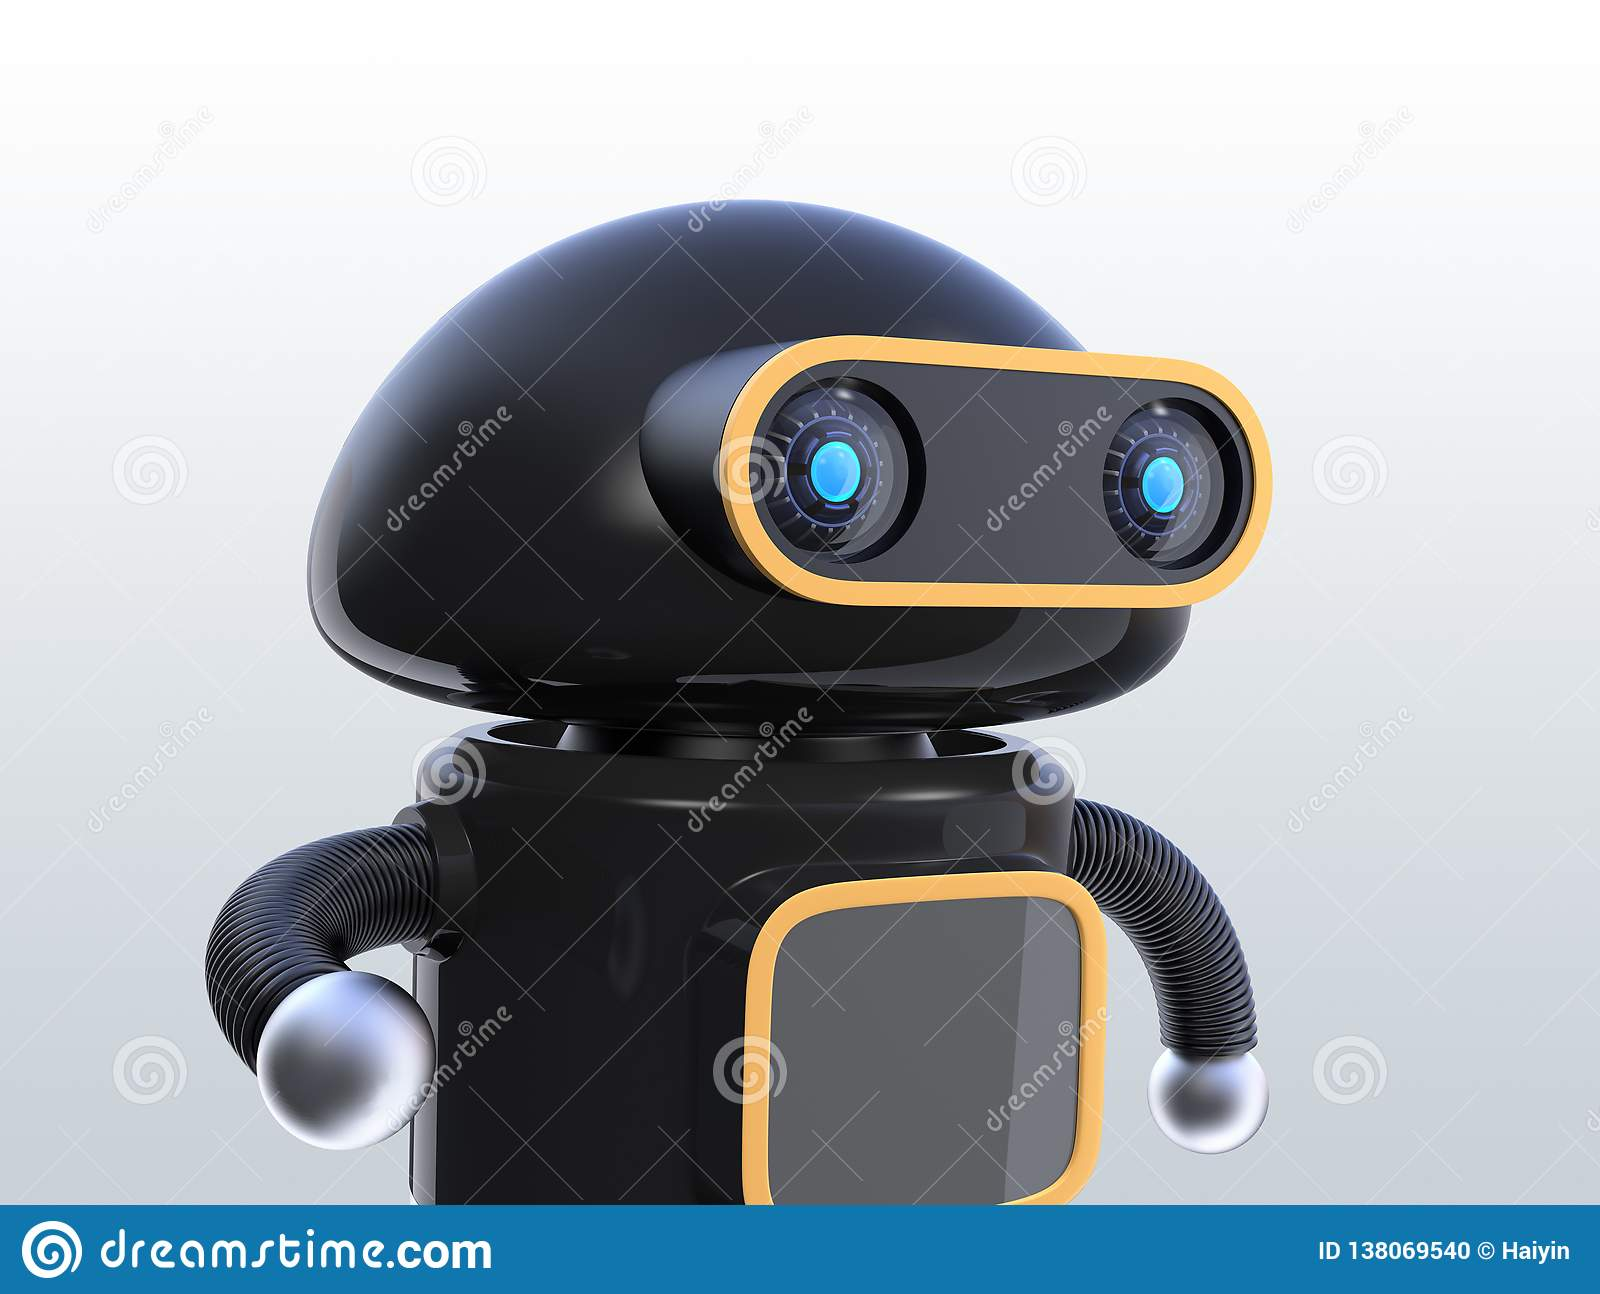 173487f1056 Close up view of black robot looking straight ahead on gray background